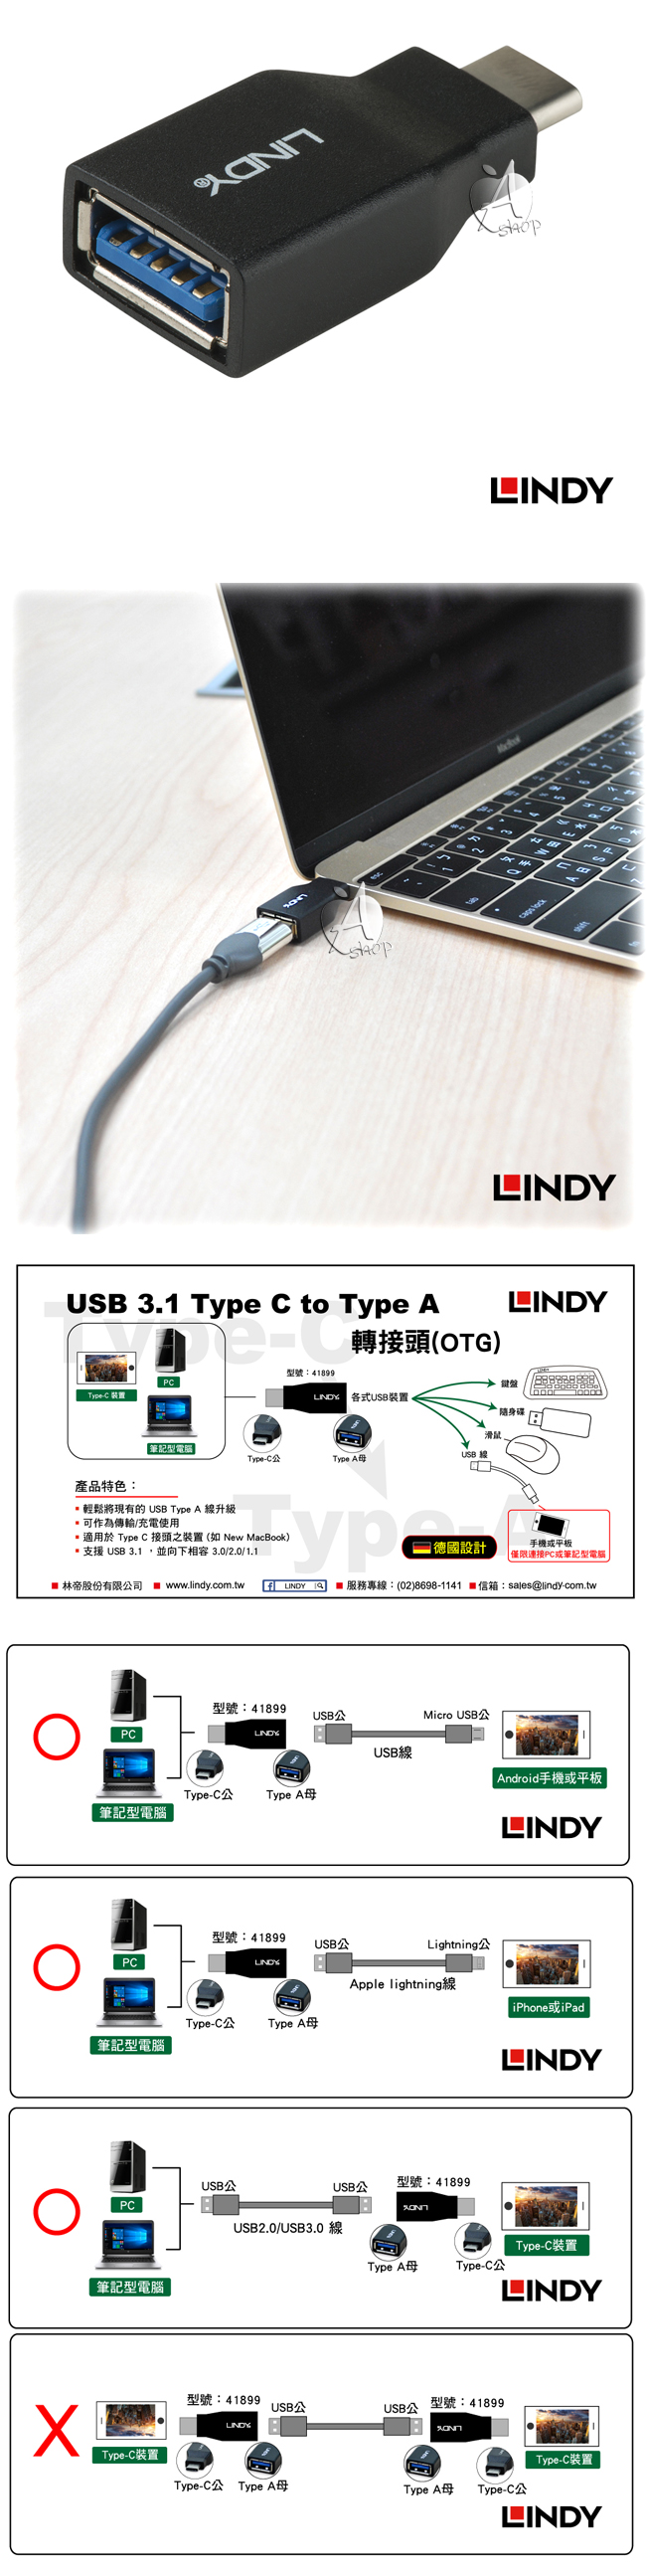 Lindy 41899 Usb 31 Type C A Adapter To